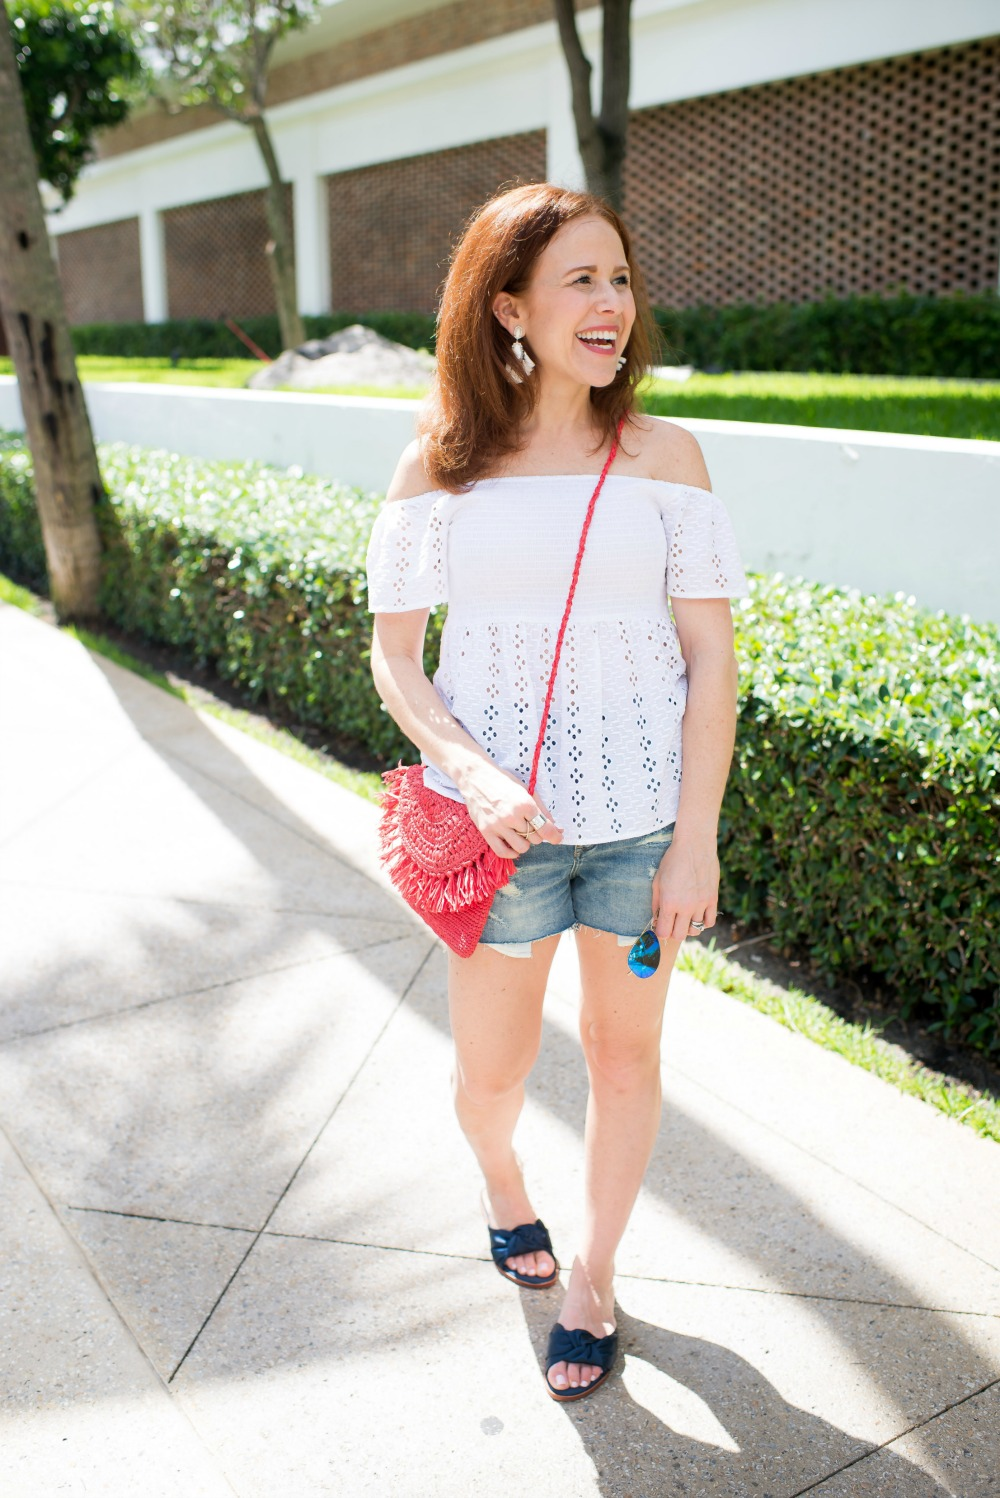 Casual, cute and super easy 4th of July outfit inspiration - Casual Cute 4th of July Outfit featured by popular Florida style blogger, The Modern Savvy